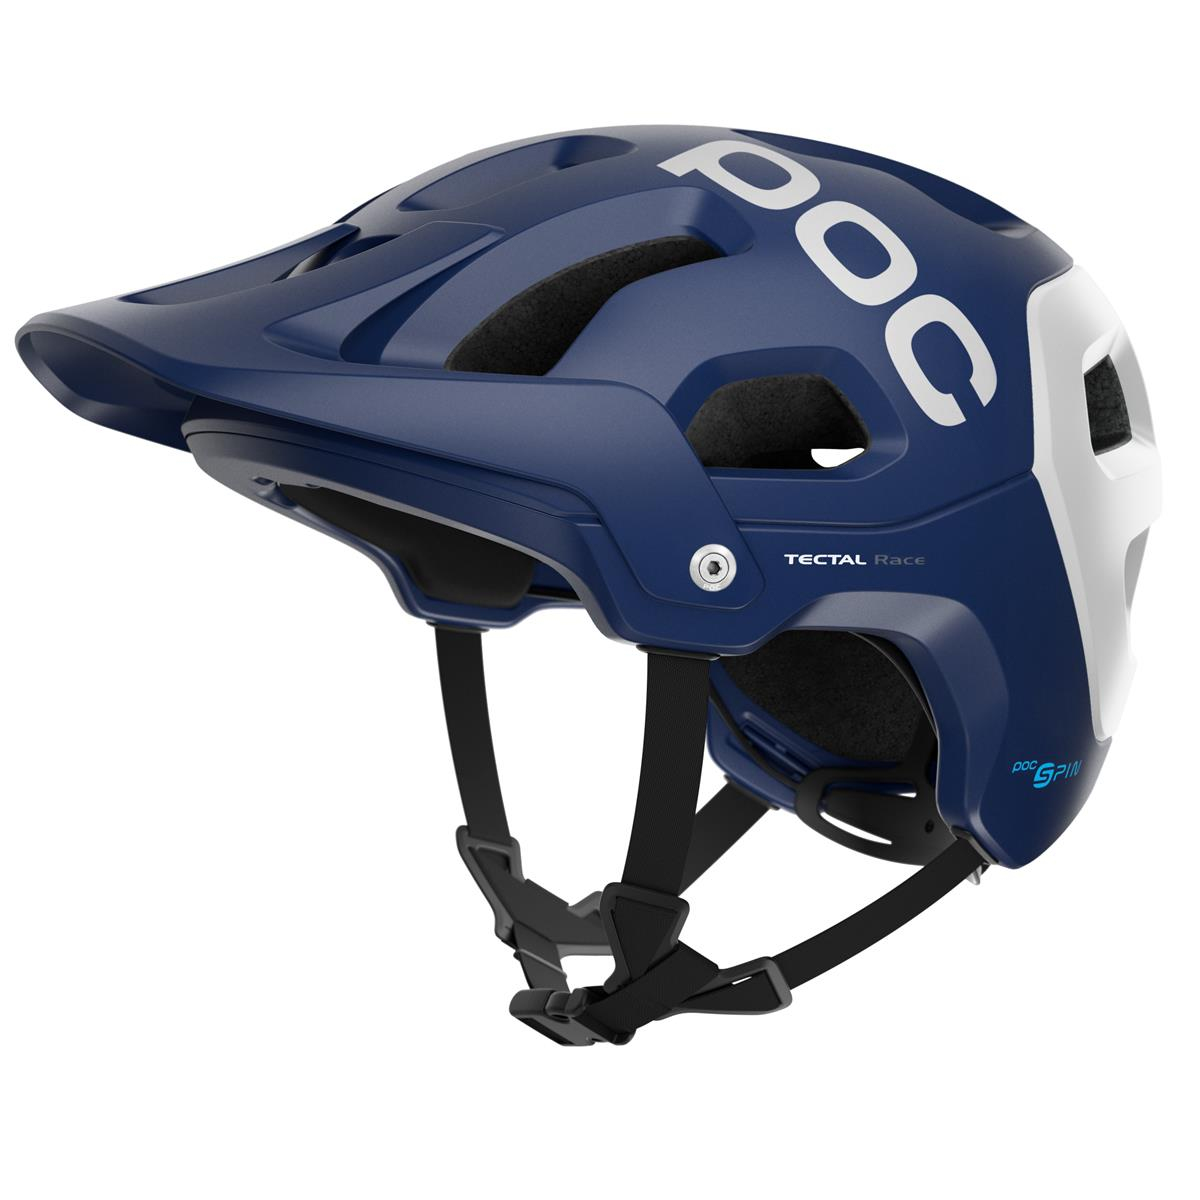 Enduro helmet Tectal Race Spin blue size XS-S (51-54cm)